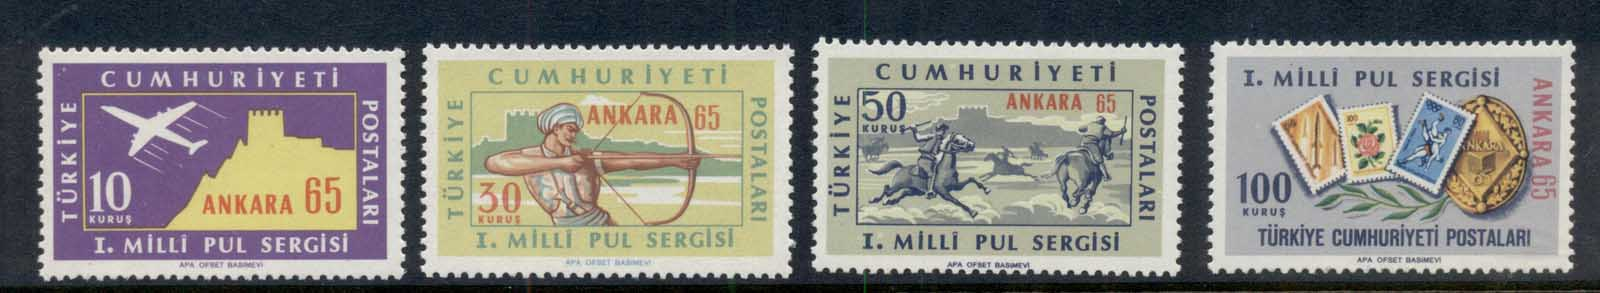 Turkey 1965 Postage Stamp Ex. MUH